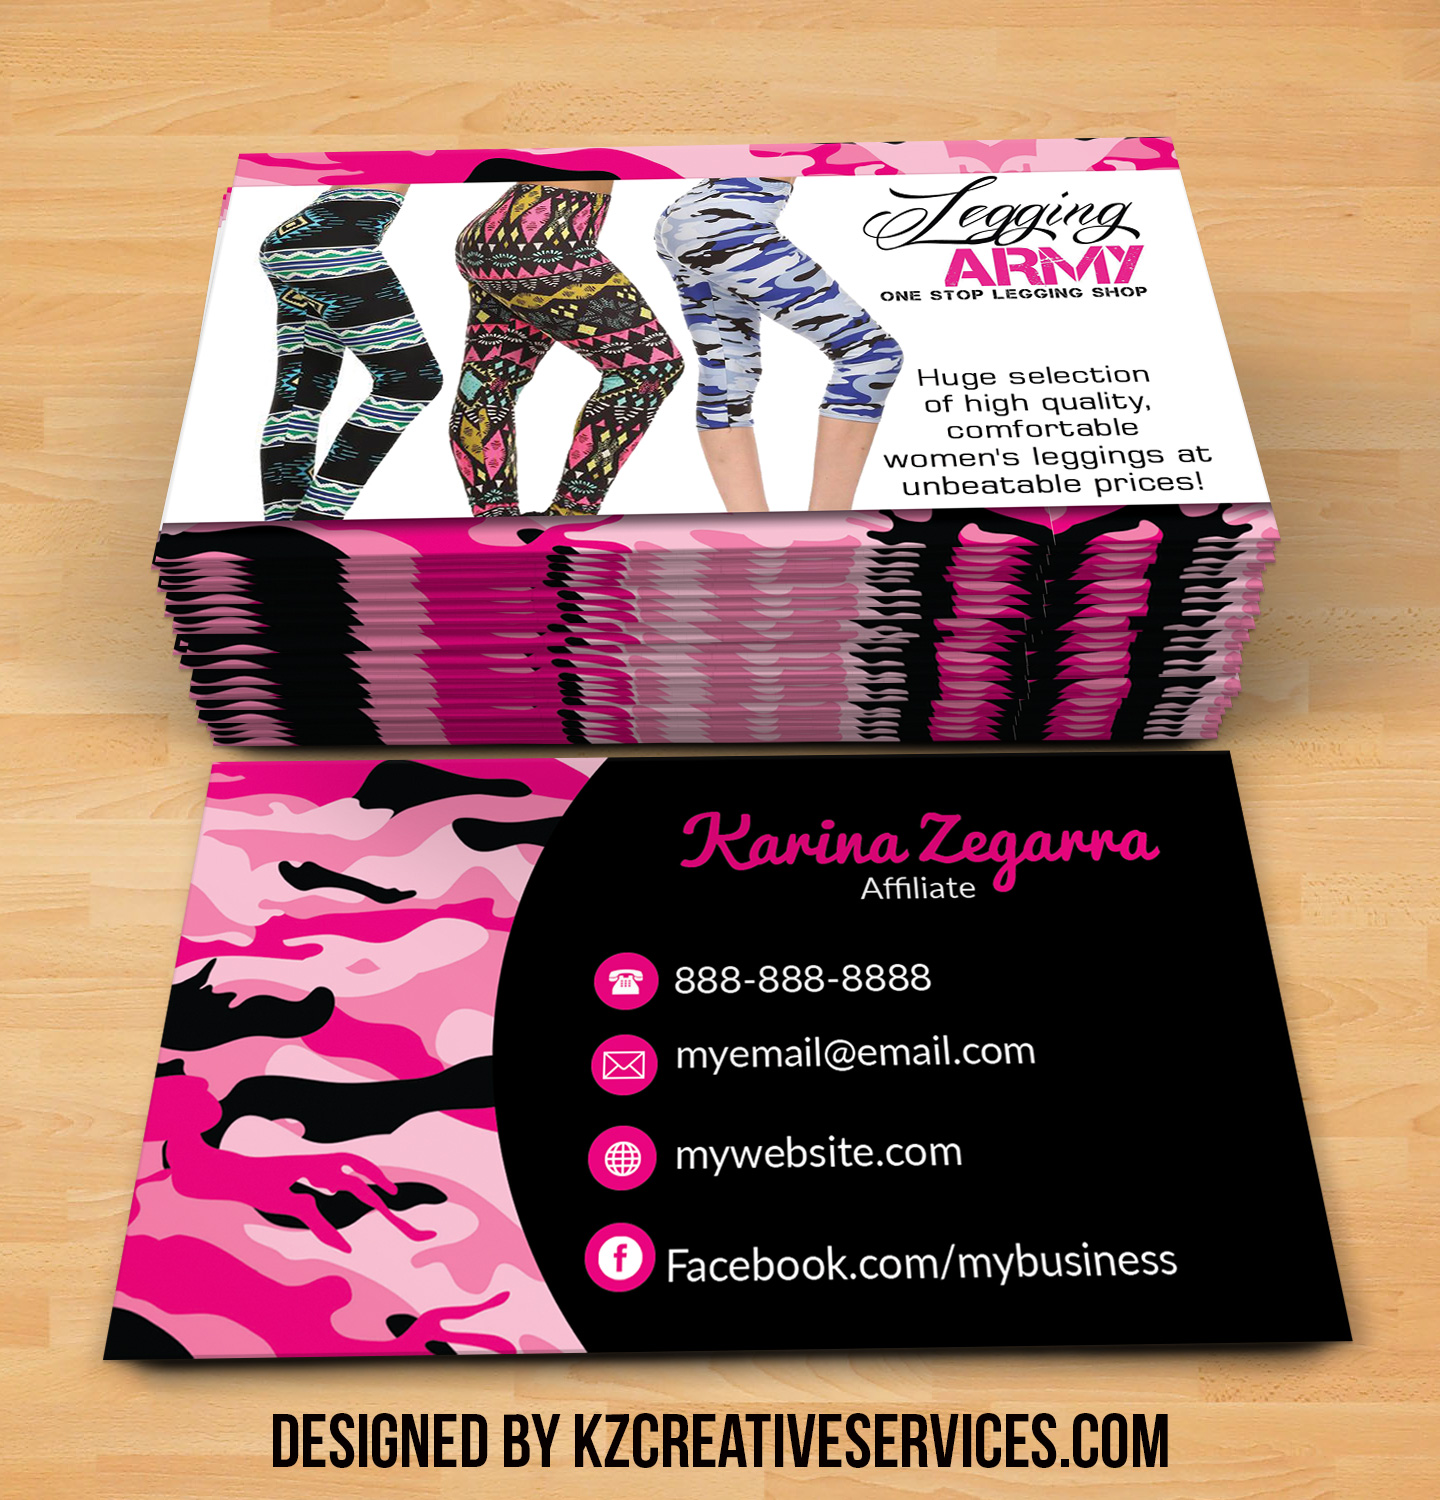 Legging army business cards style 2 kz creative services online legging army business cards style 2 colourmoves